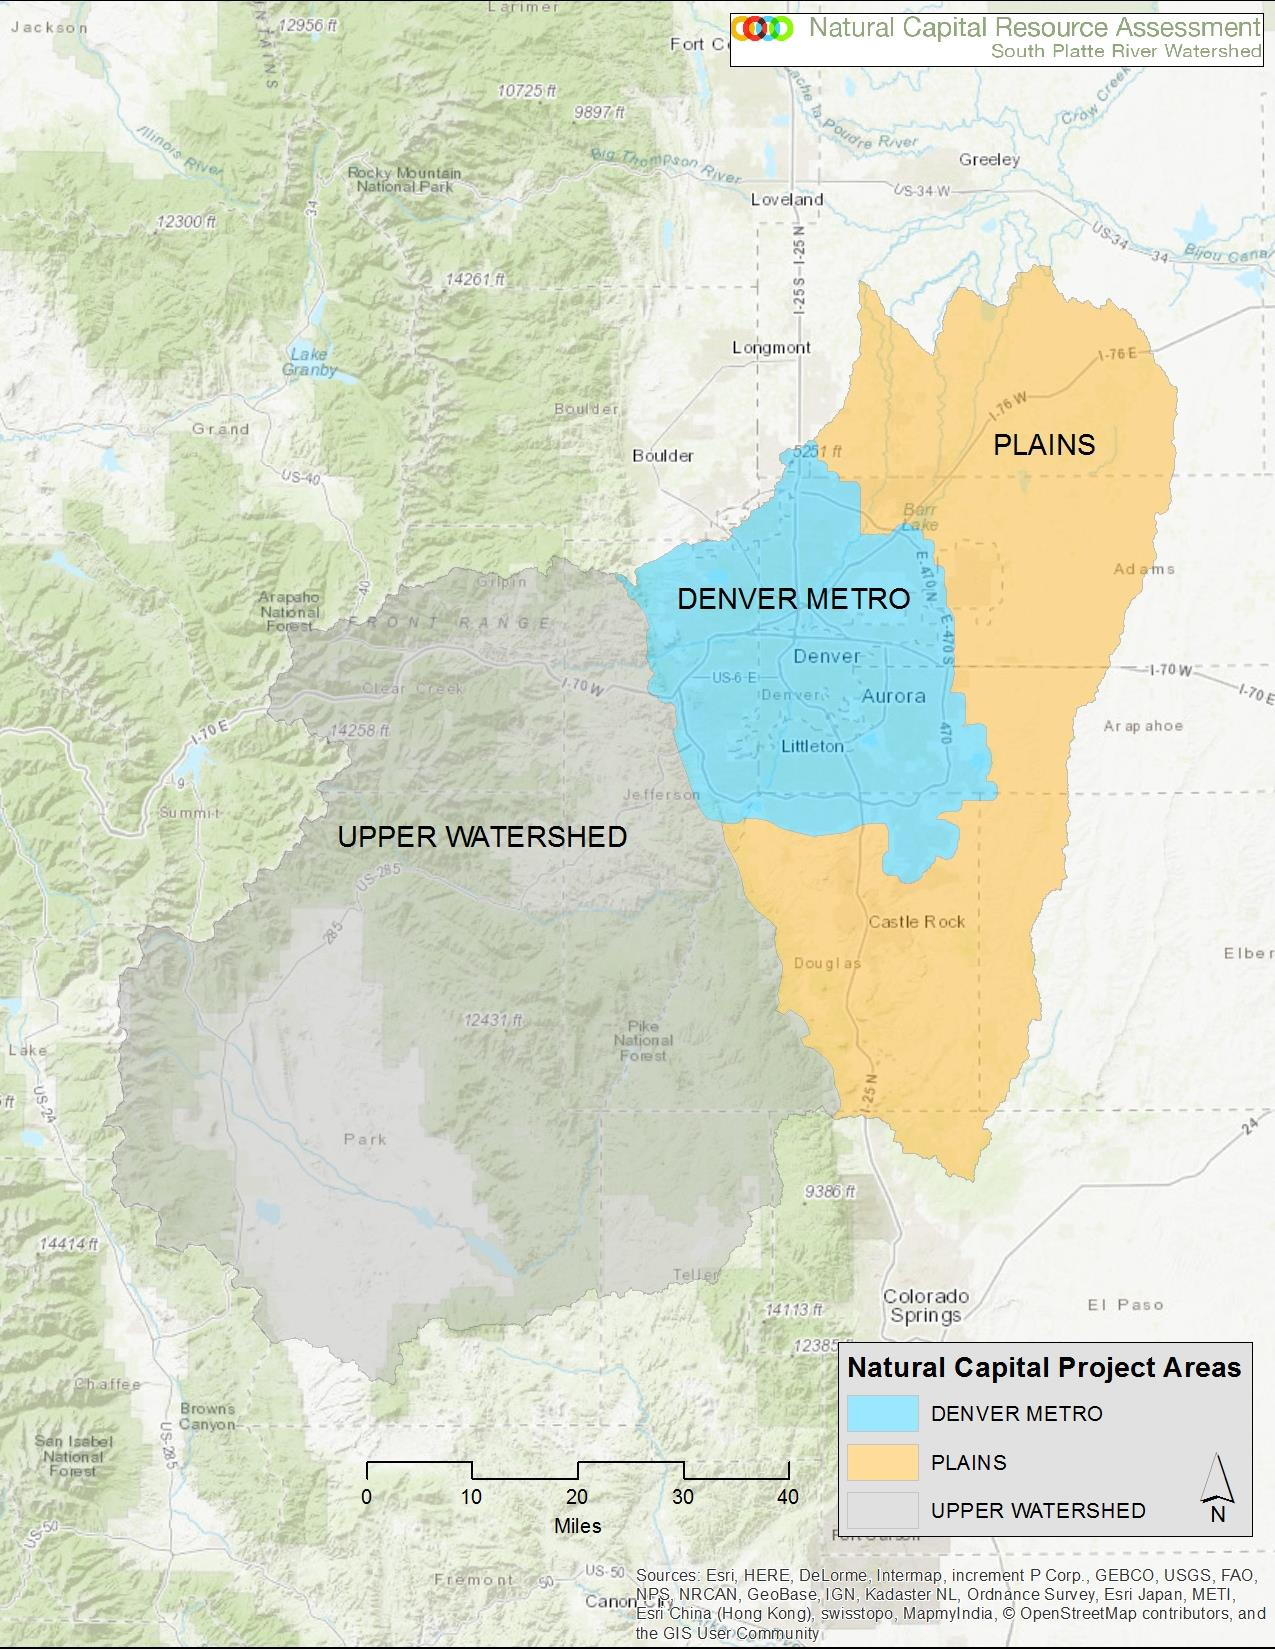 Project Areas of the South Platte Natural Capital Resource Assessment  Click to Enlarge